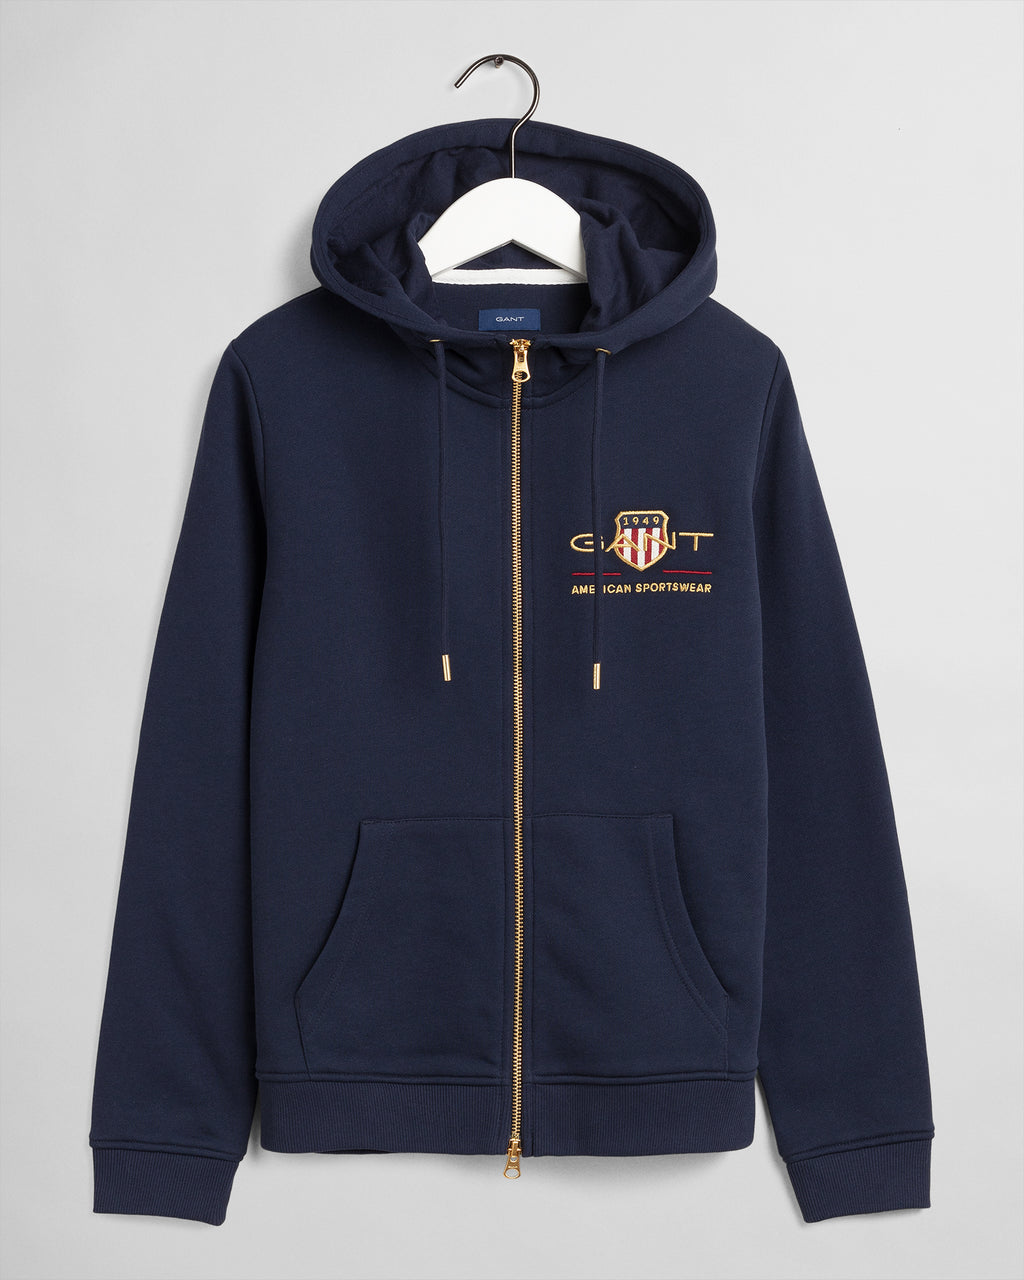 GANT DAM Archive Shield Zip Hoodie Evening Blue